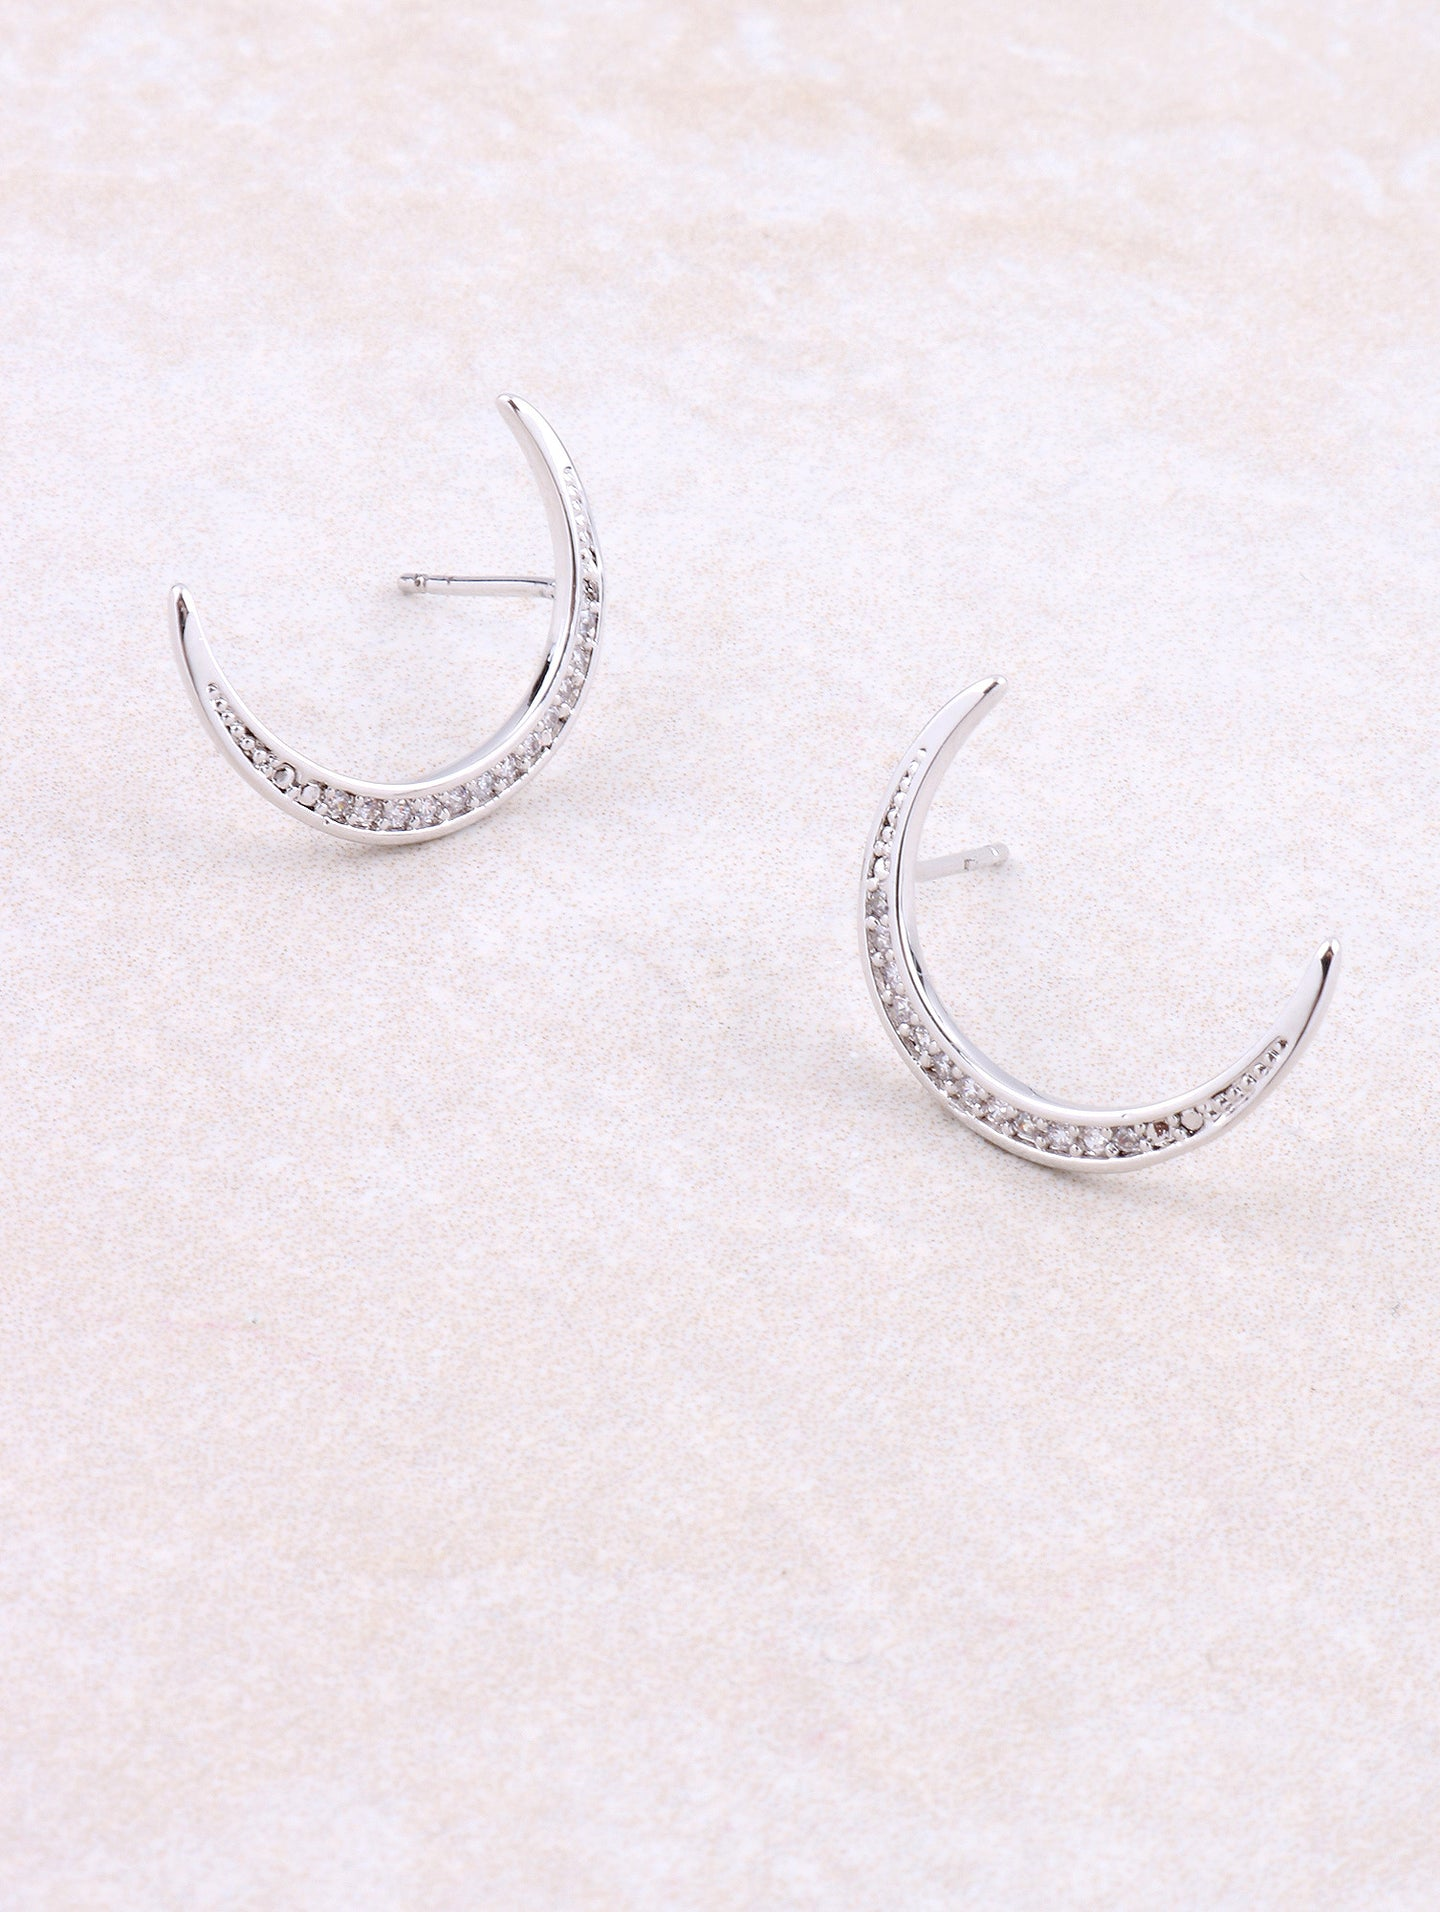 White Gold Pave Crescent Moon Earring Anarchy Street Whitegold